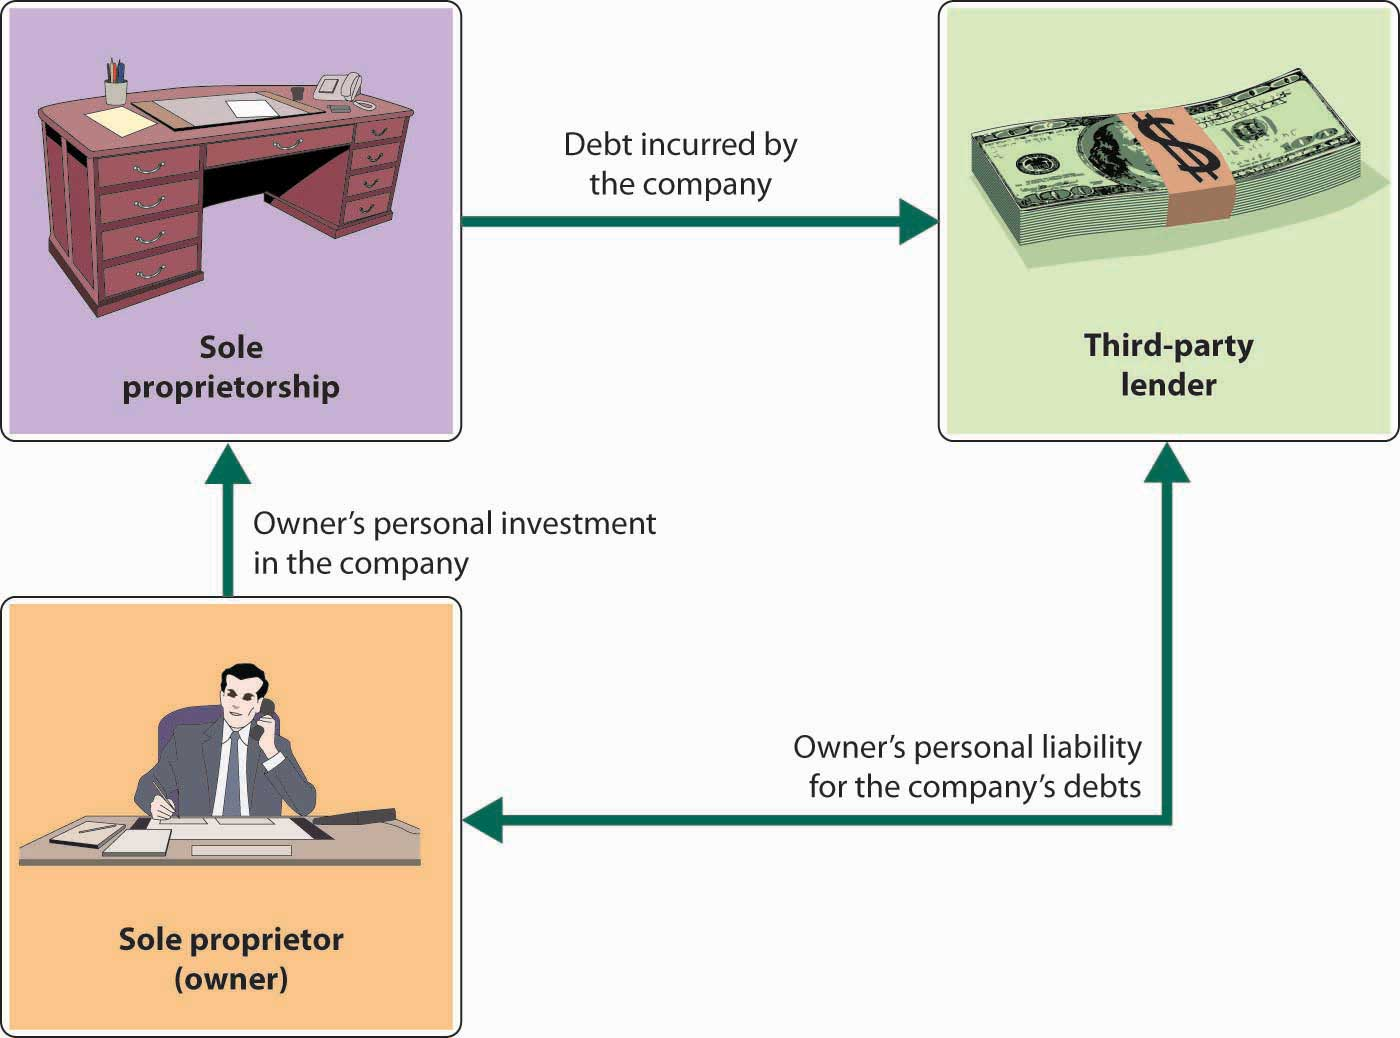 sole proprietorship and world A sole proprietorship is an unincorporated business that is owned by one individual it is the simplest kind of business structure the owner of a sole proprietorship has sole responsibility for making decisions, receives all the profits, claims all losses, and does not have separate legal status.